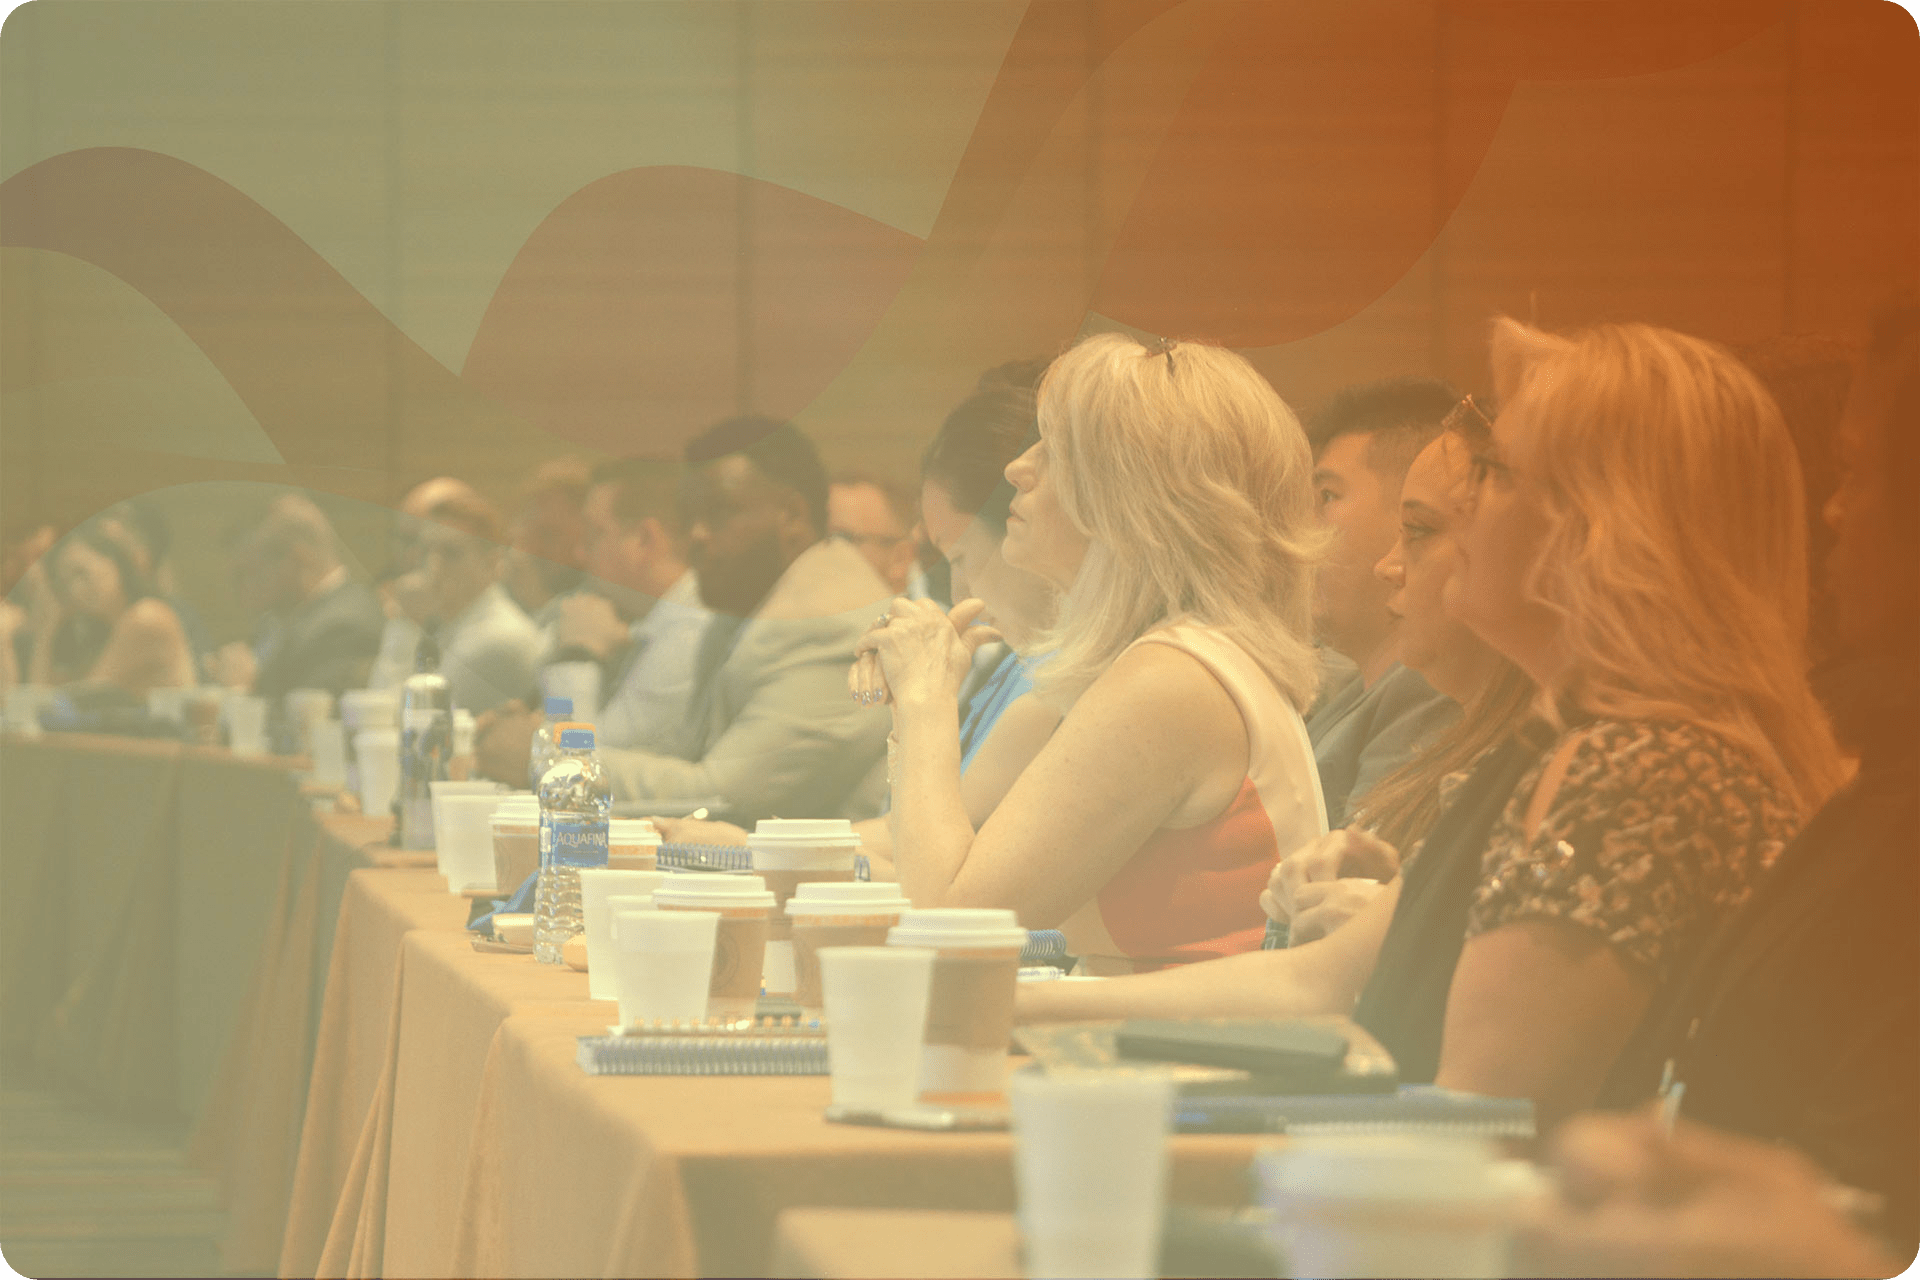 Conference transcription | Conference goers